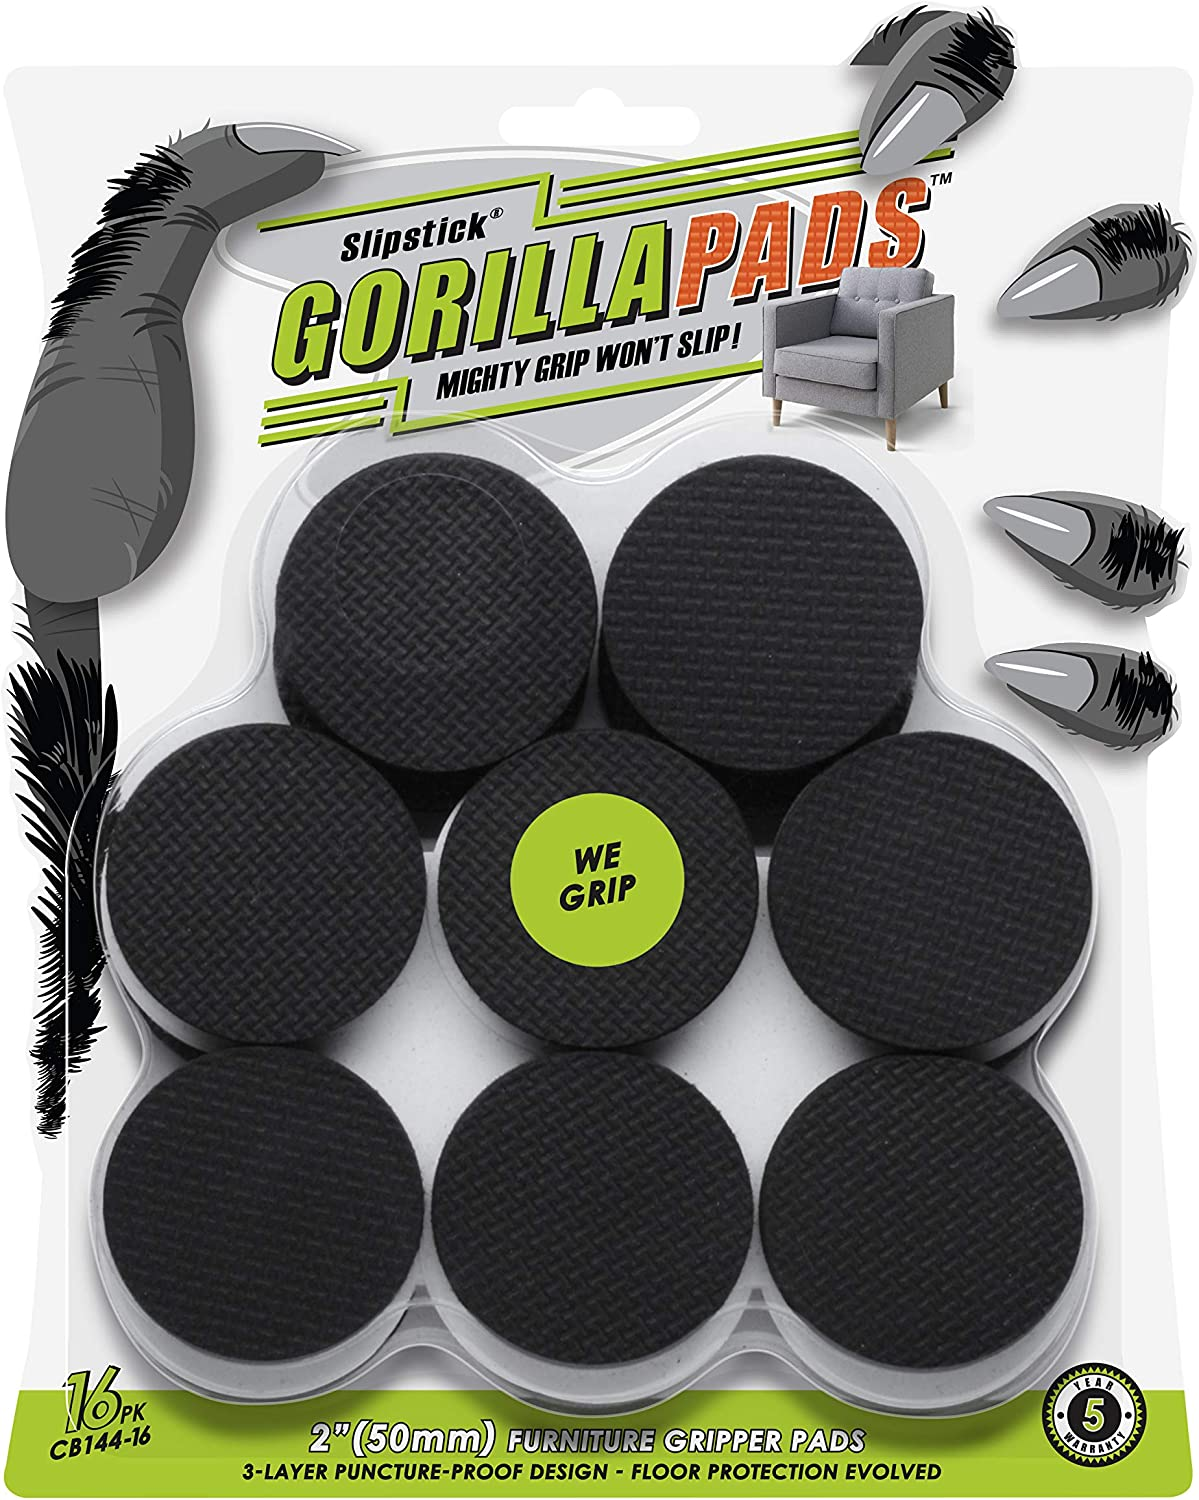 GorillaPads Non Slip Furniture Pads/Floor Grippers (Set of 16 Grips) 2 Inch Round Floor Protectors for Under Furniture, Black, CB144-16